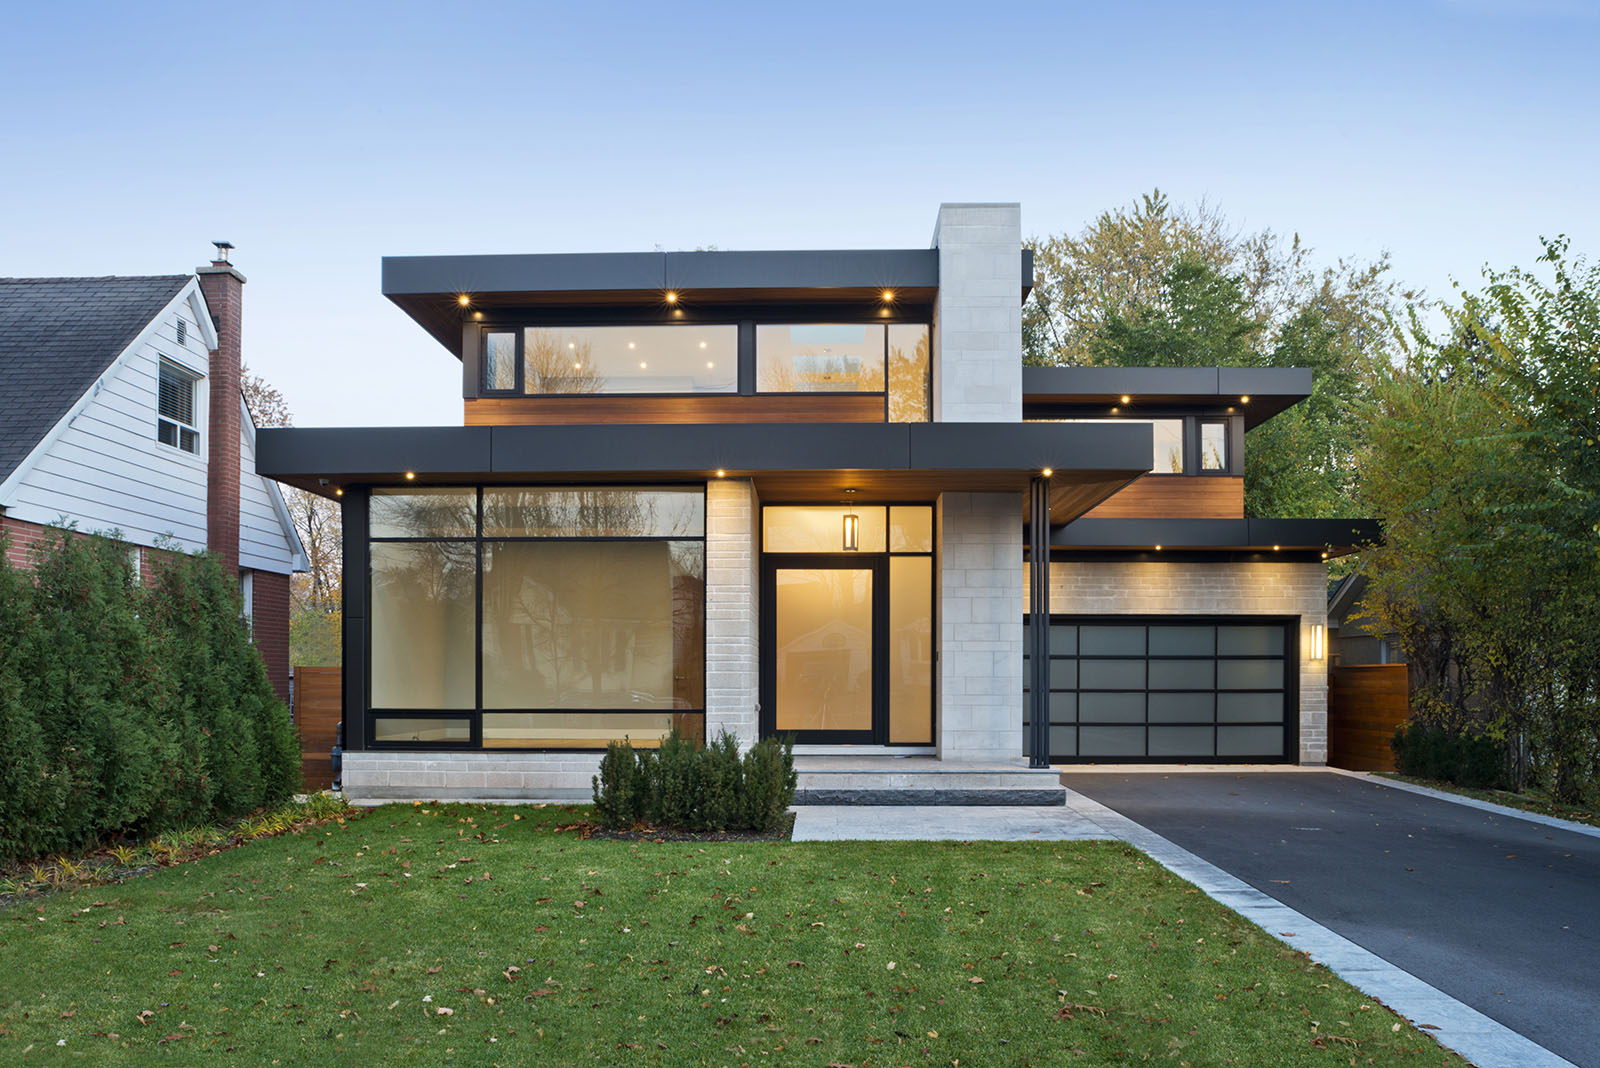 A contemporary styled residential exterior photographed at dusk